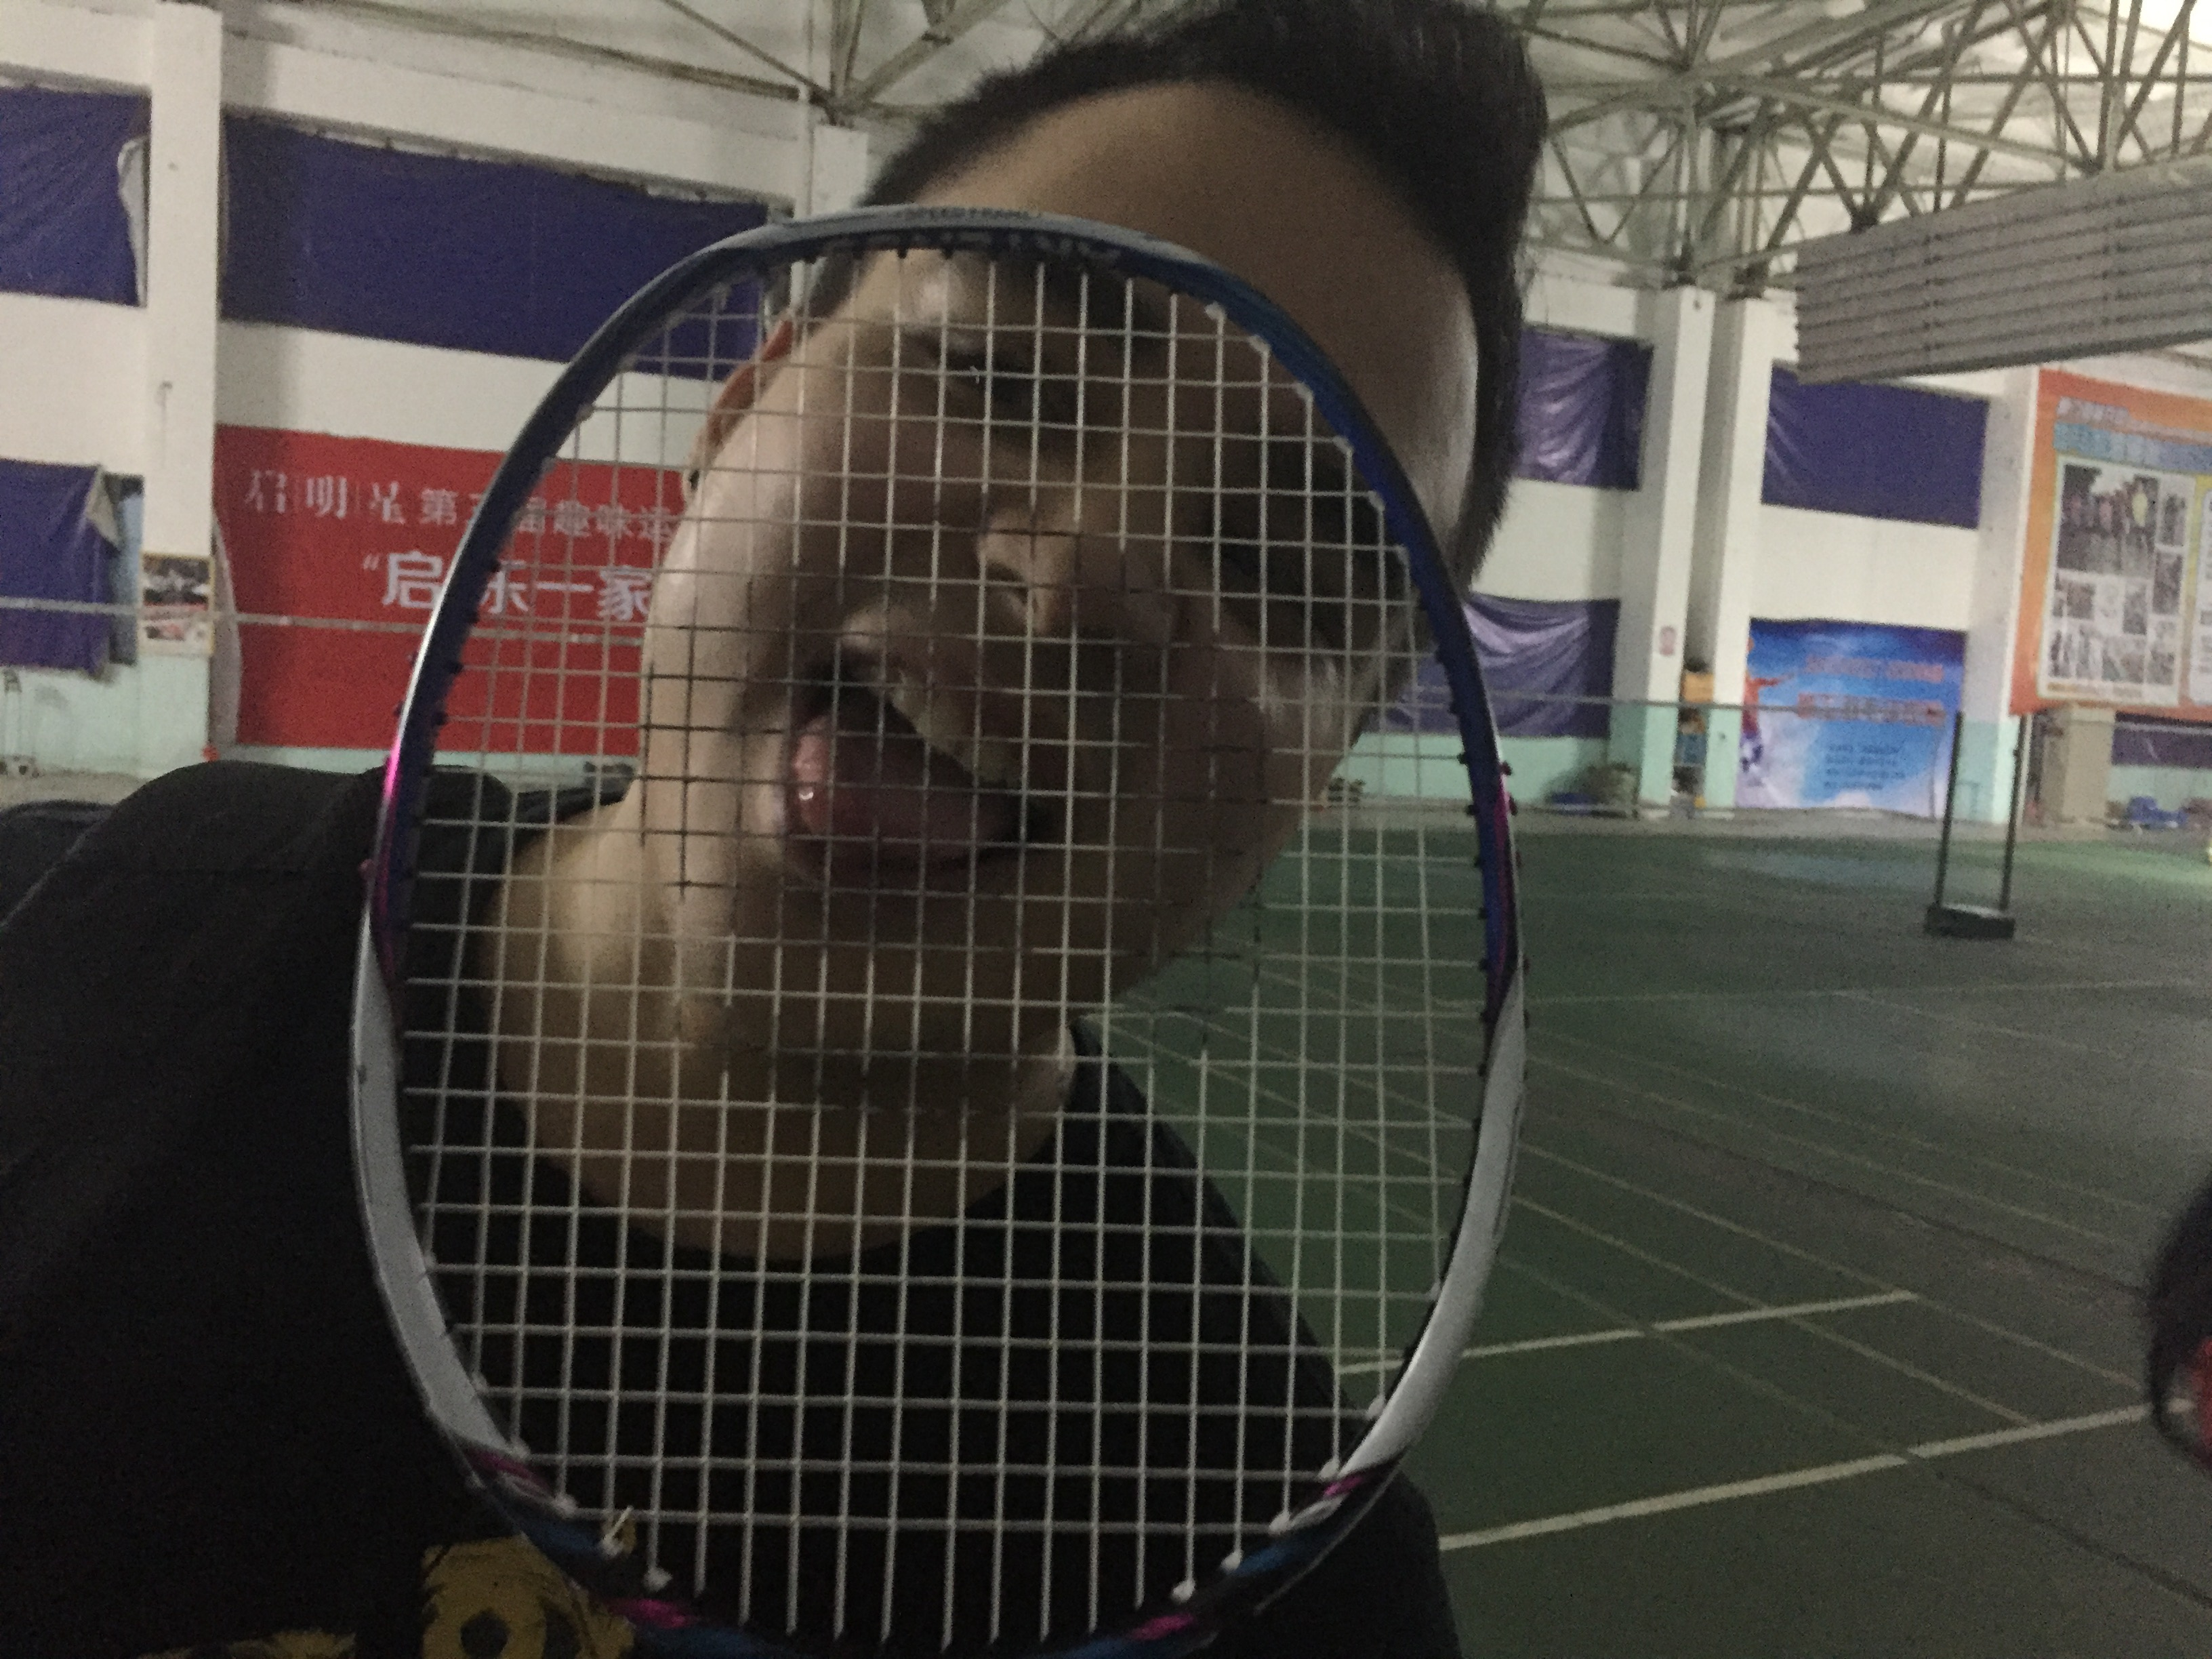 Ivan got a little tongue action with my racket, The perv.